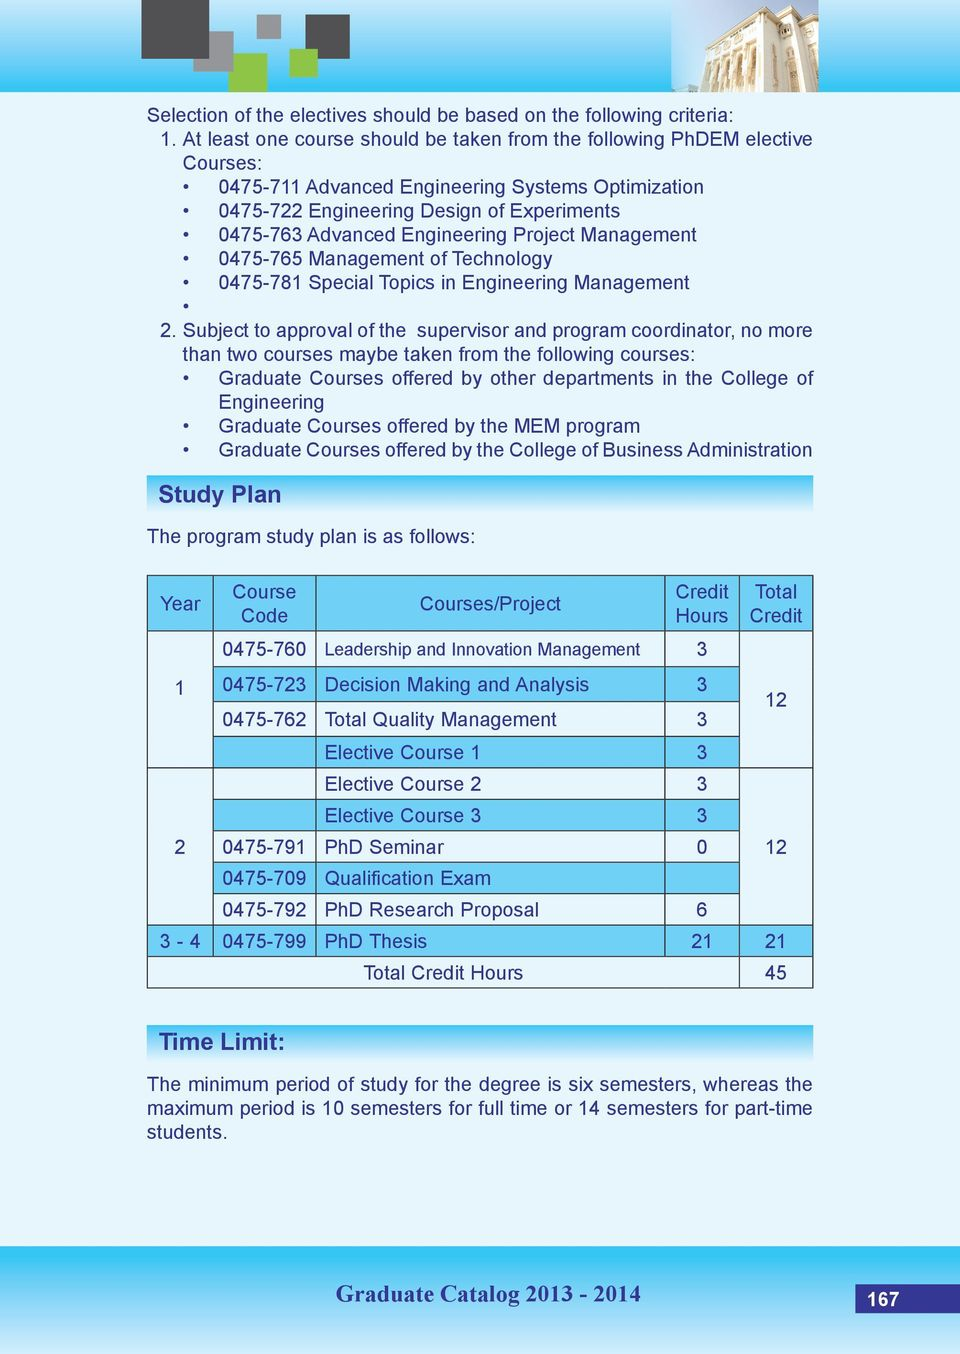 Engineering Project Management 0475-765 Management of Technology 0475-781 Special Topics in Engineering Management 2.